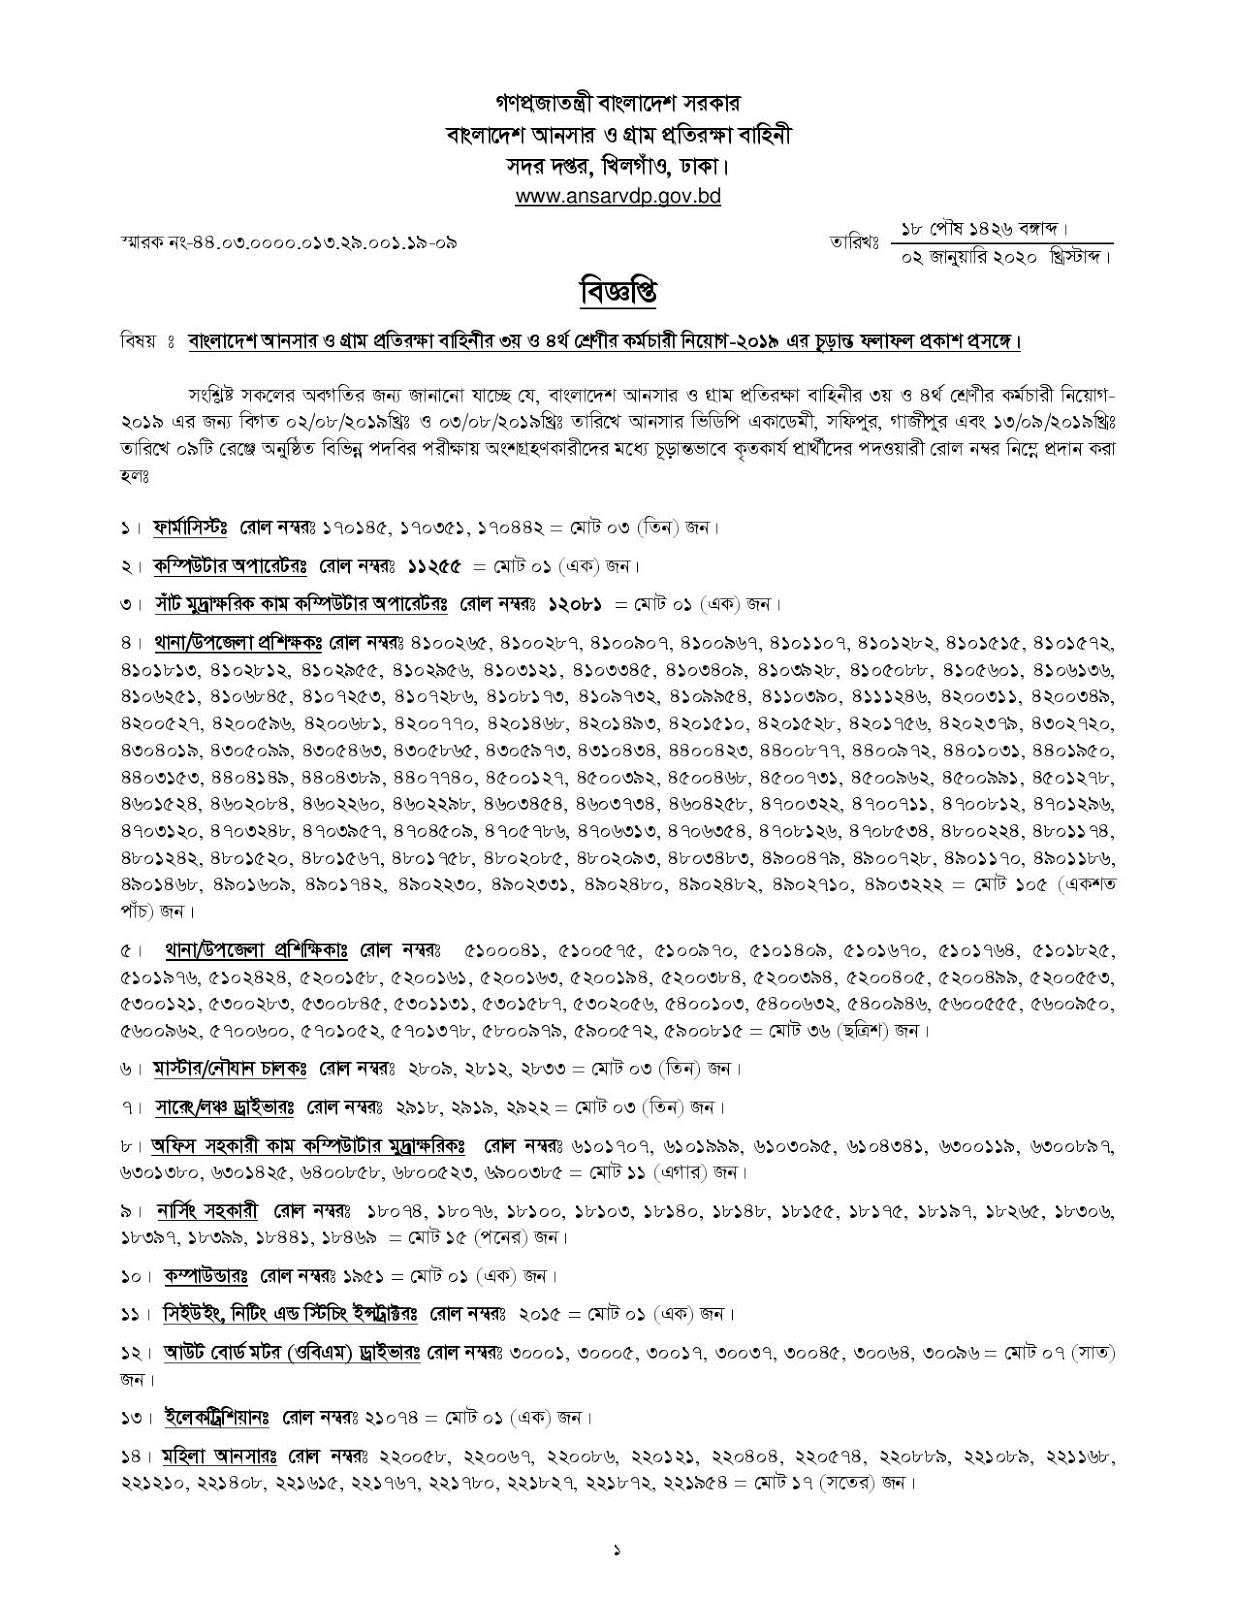 Bangladesh ansar job exam result 1